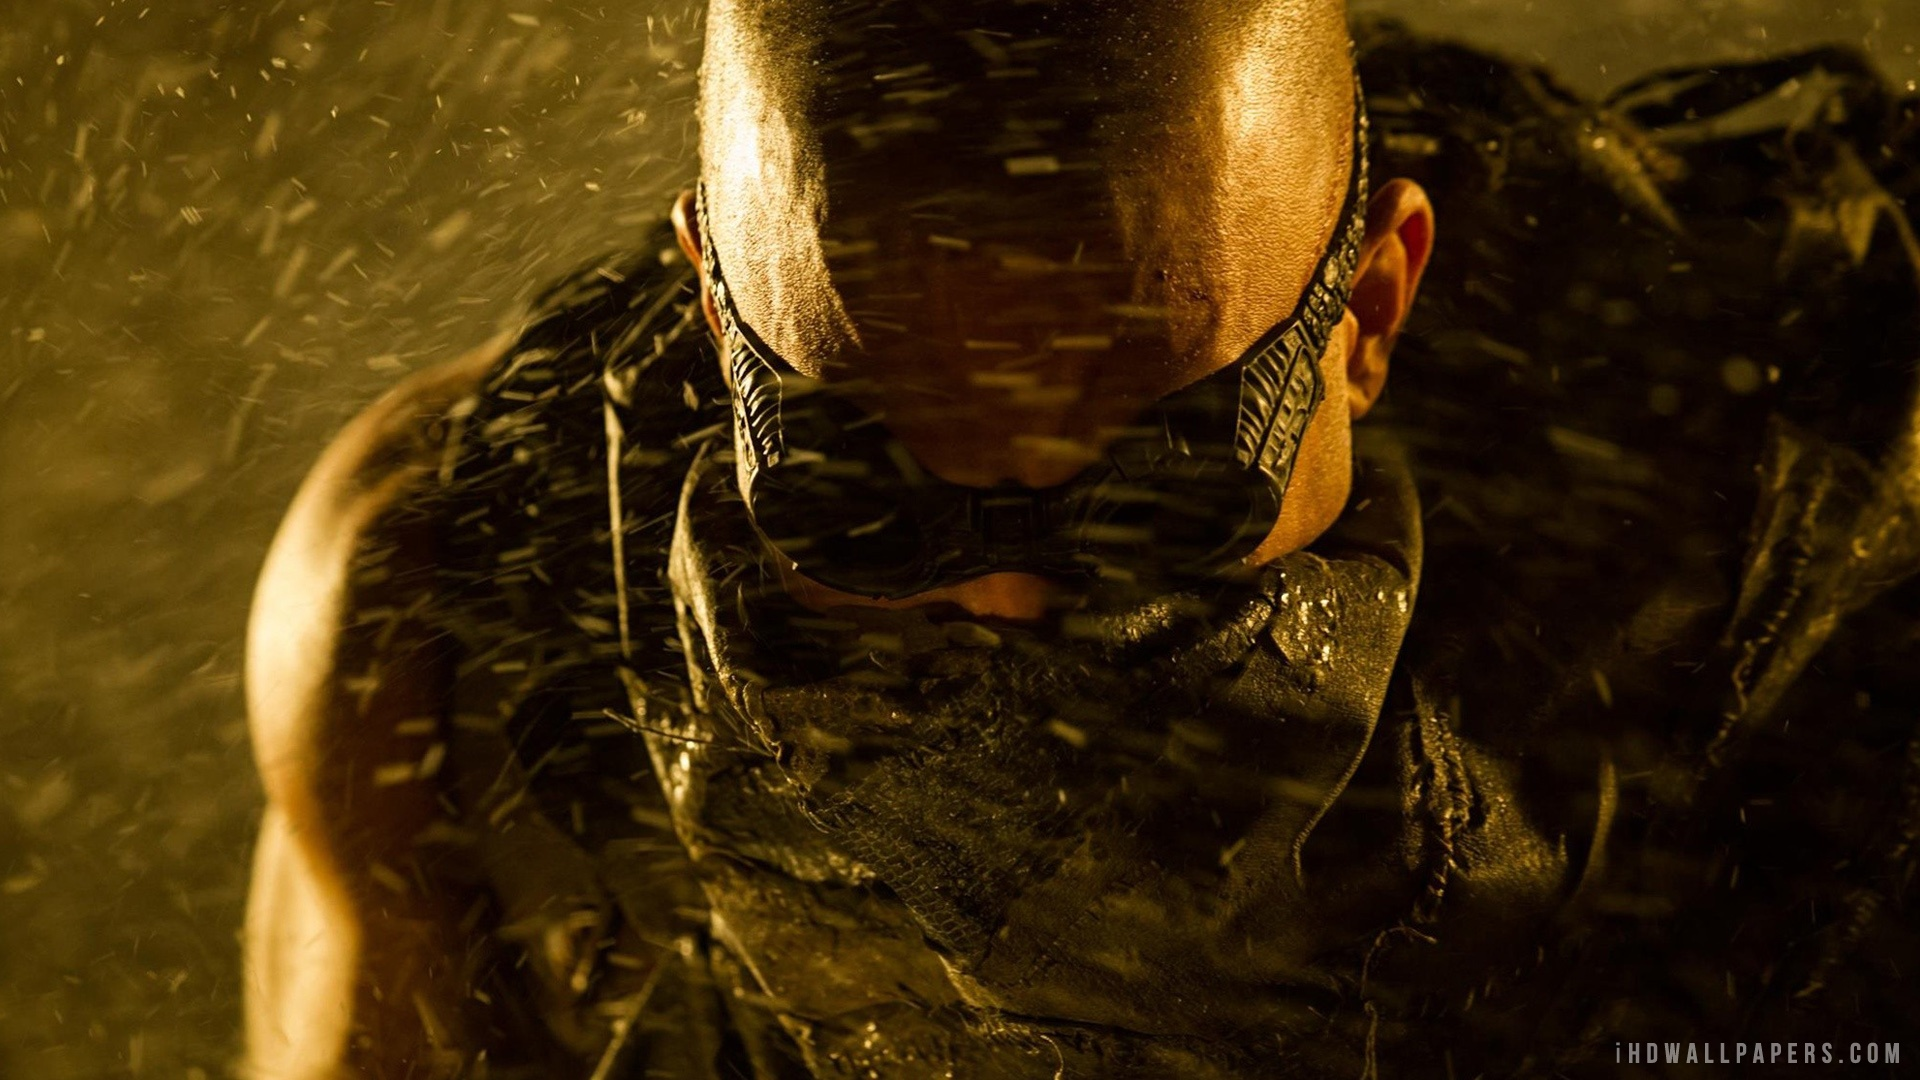 Riddick Rule The Dark HD desktop wallpaper : High Definition 1920x1080